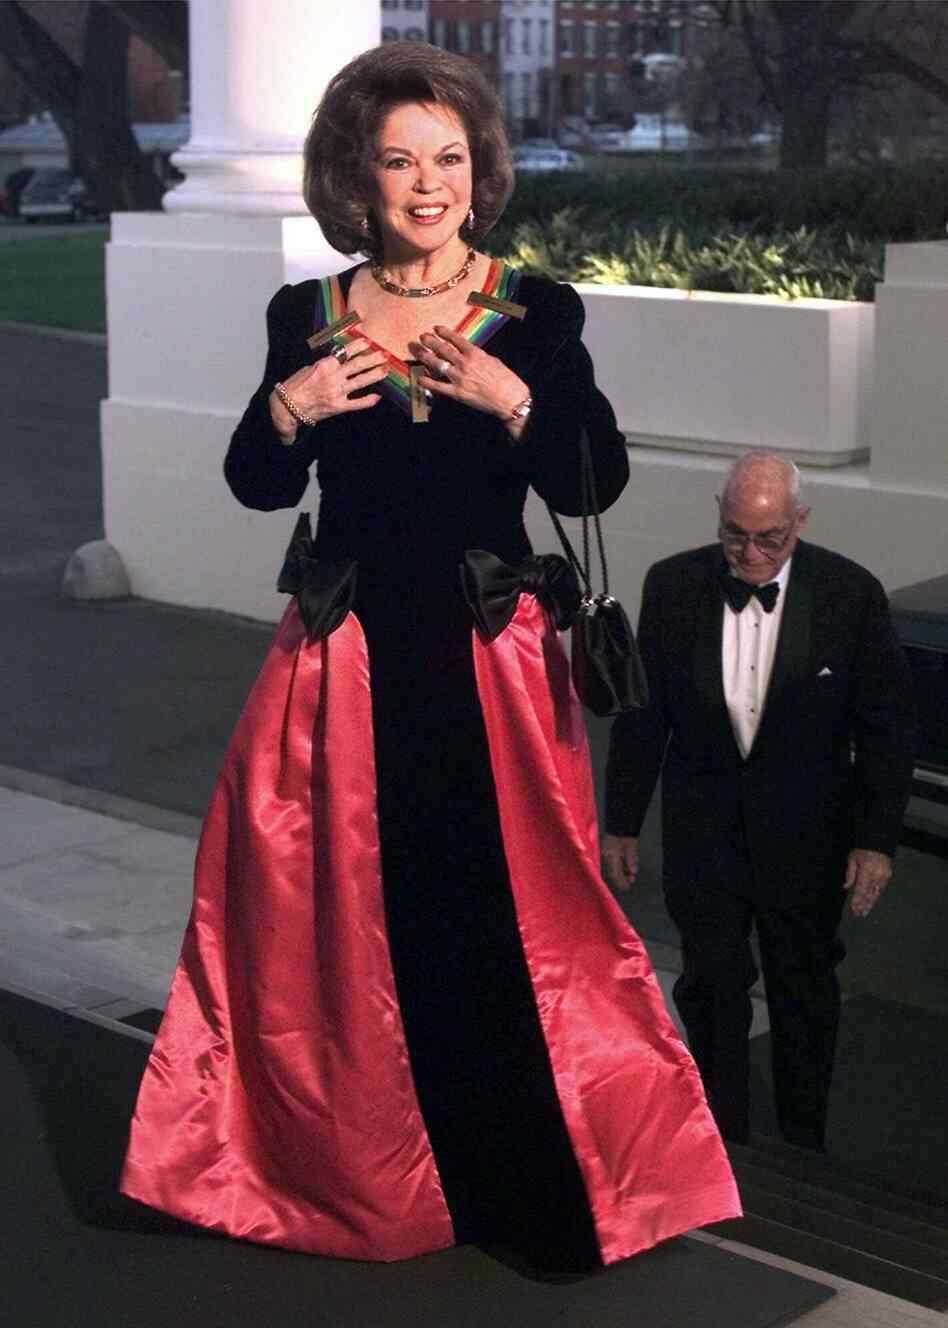 Temple arrives at the White House in 1998. She was among those receiving Kennedy Center honors, in her case for lifetime achievement in the arts.